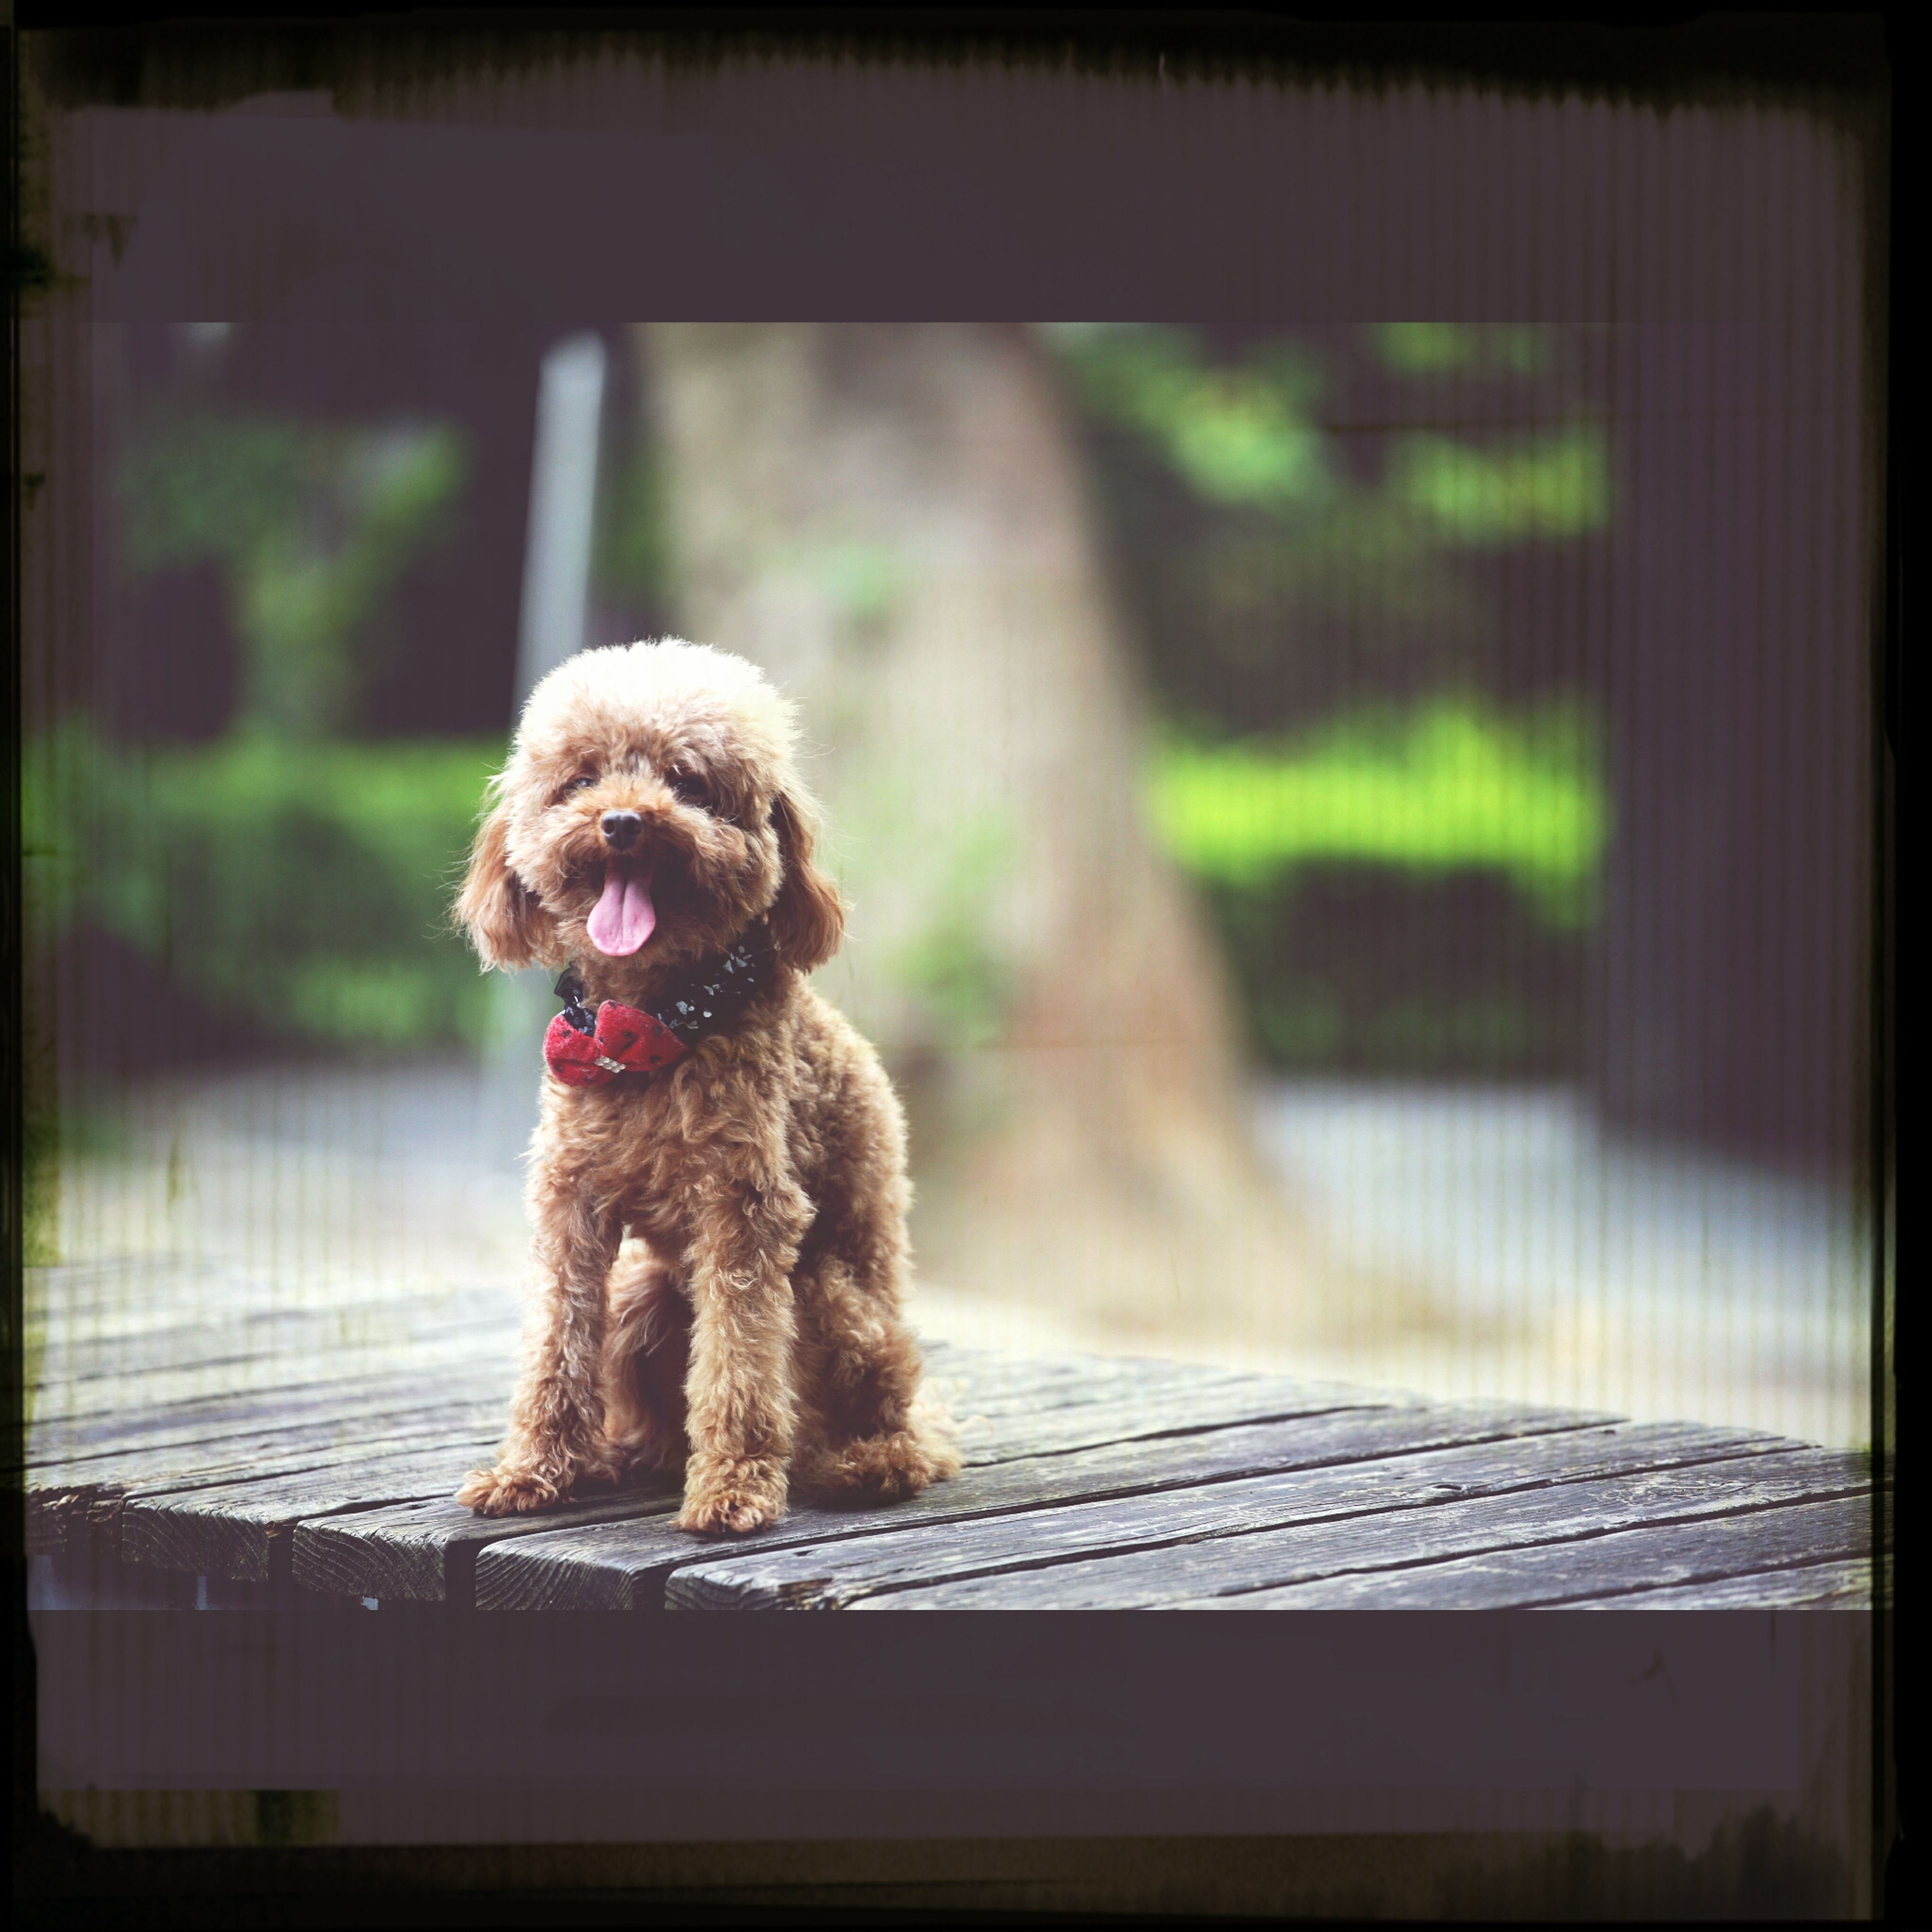 animal themes, one animal, focus on foreground, transfer print, water, wildlife, dog, animals in the wild, mammal, sitting, pets, auto post production filter, bird, domestic animals, indoors, day, rear view, close-up, animals in captivity, full length